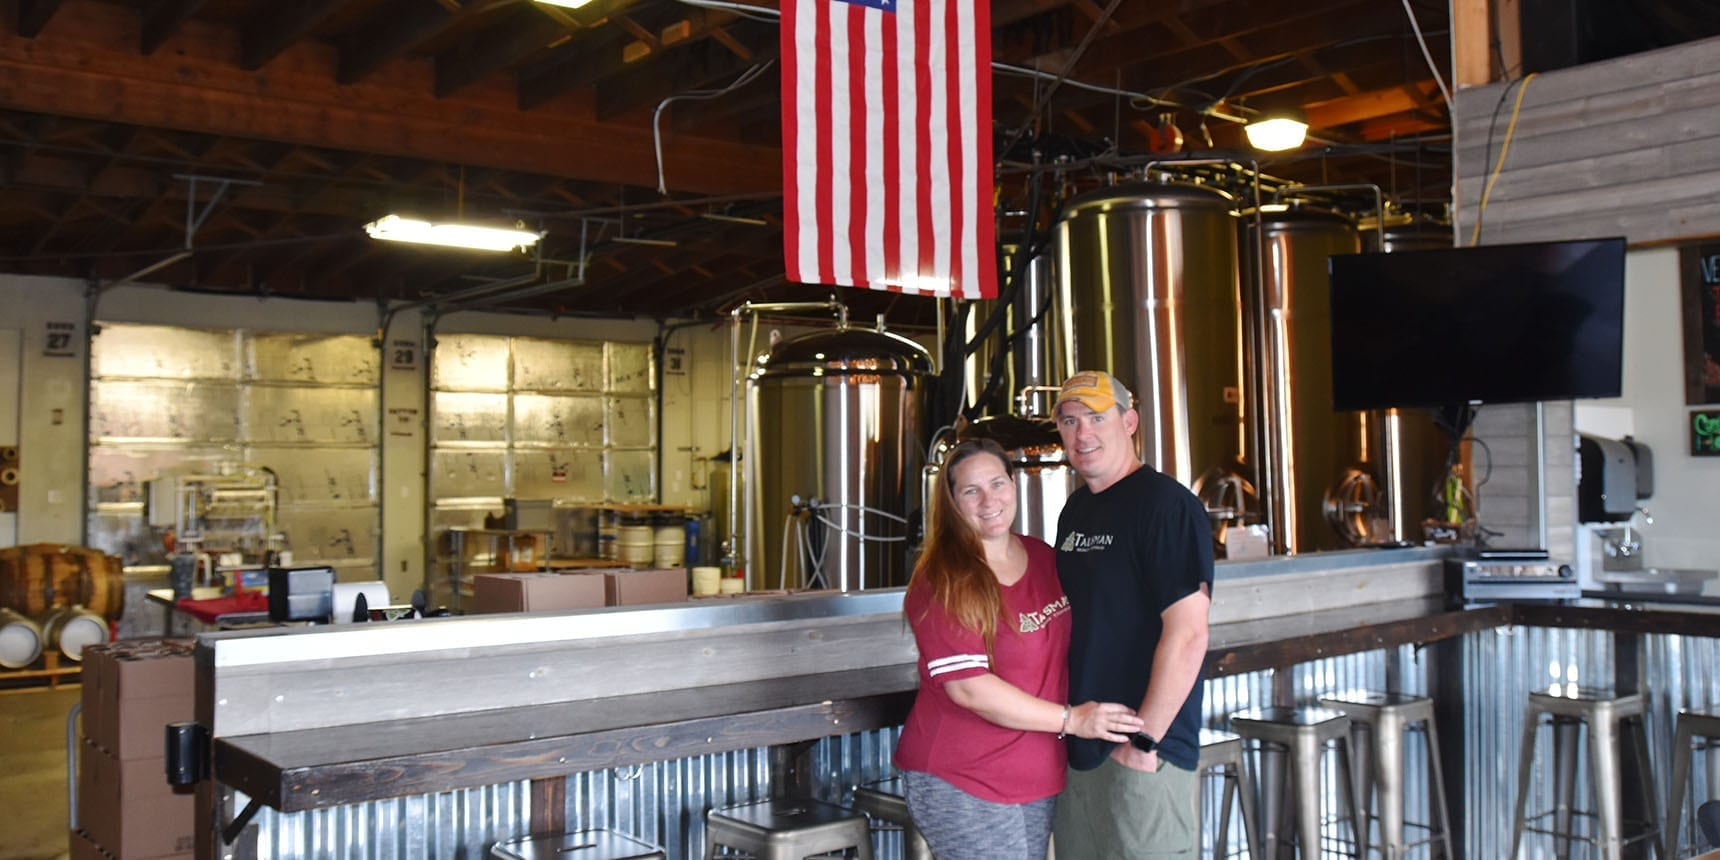 Talisman Brewing Company - Joann and Dusty Williams